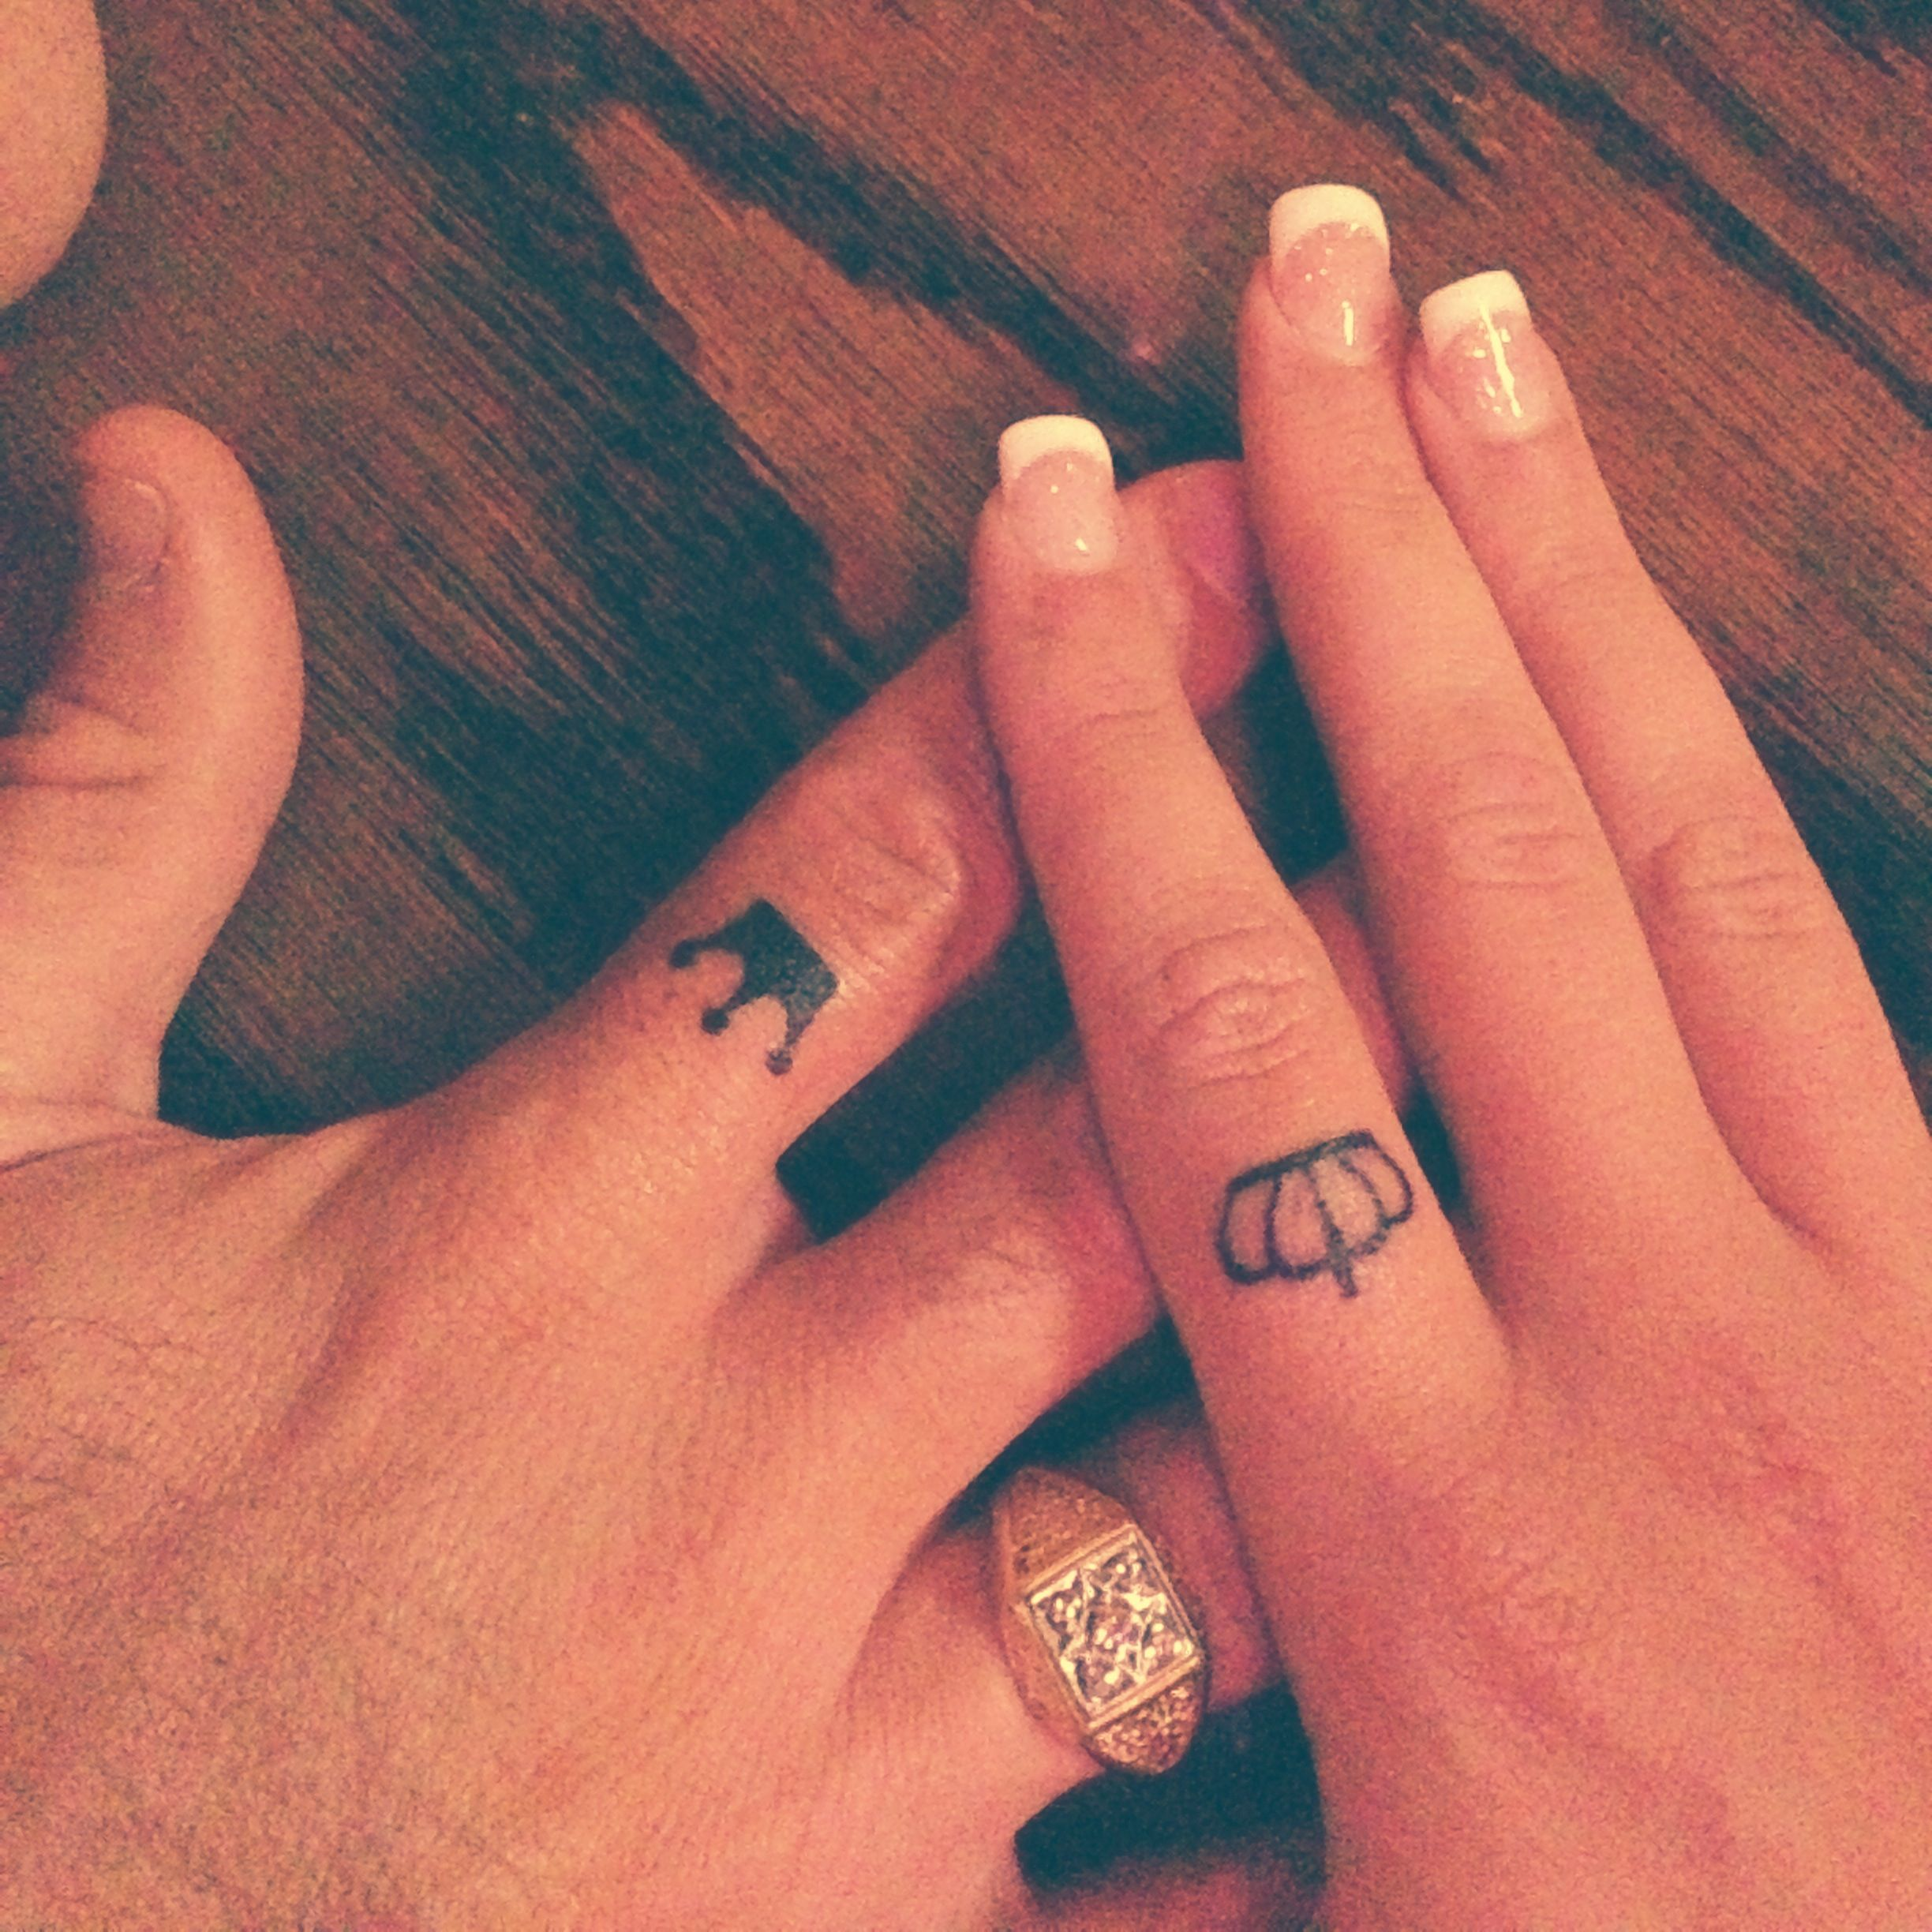 Crown tattoos on finger - photo#45